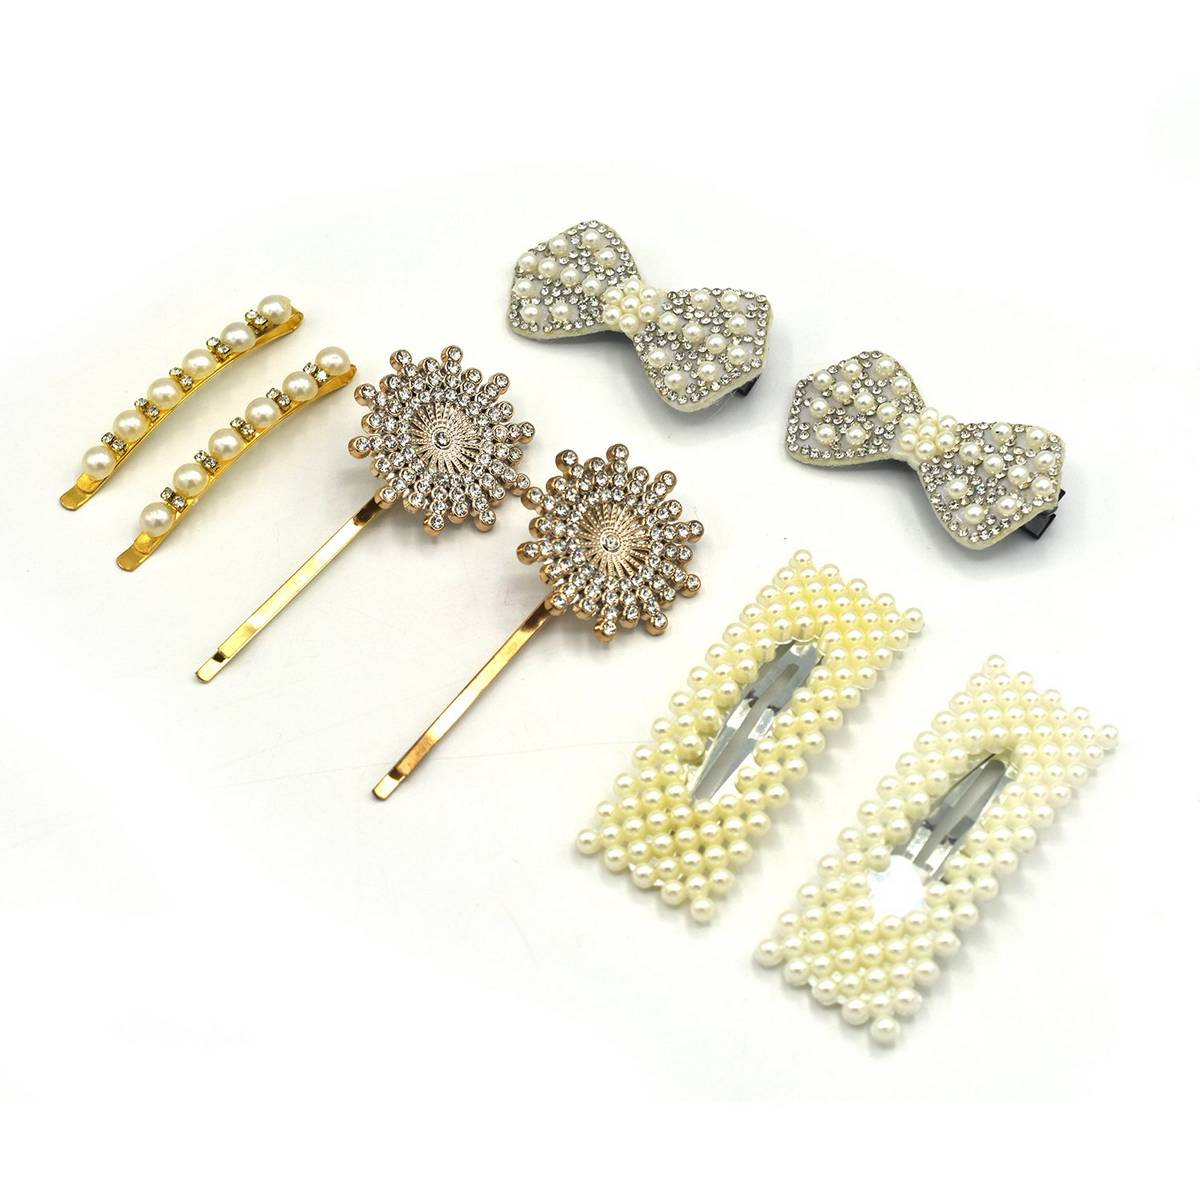 4 Pair Fashion Metal Pearl Hair Clips Decorations Women Hairpins Hair Barrettes Floral Girls Headwear Clamps Styling Accessories